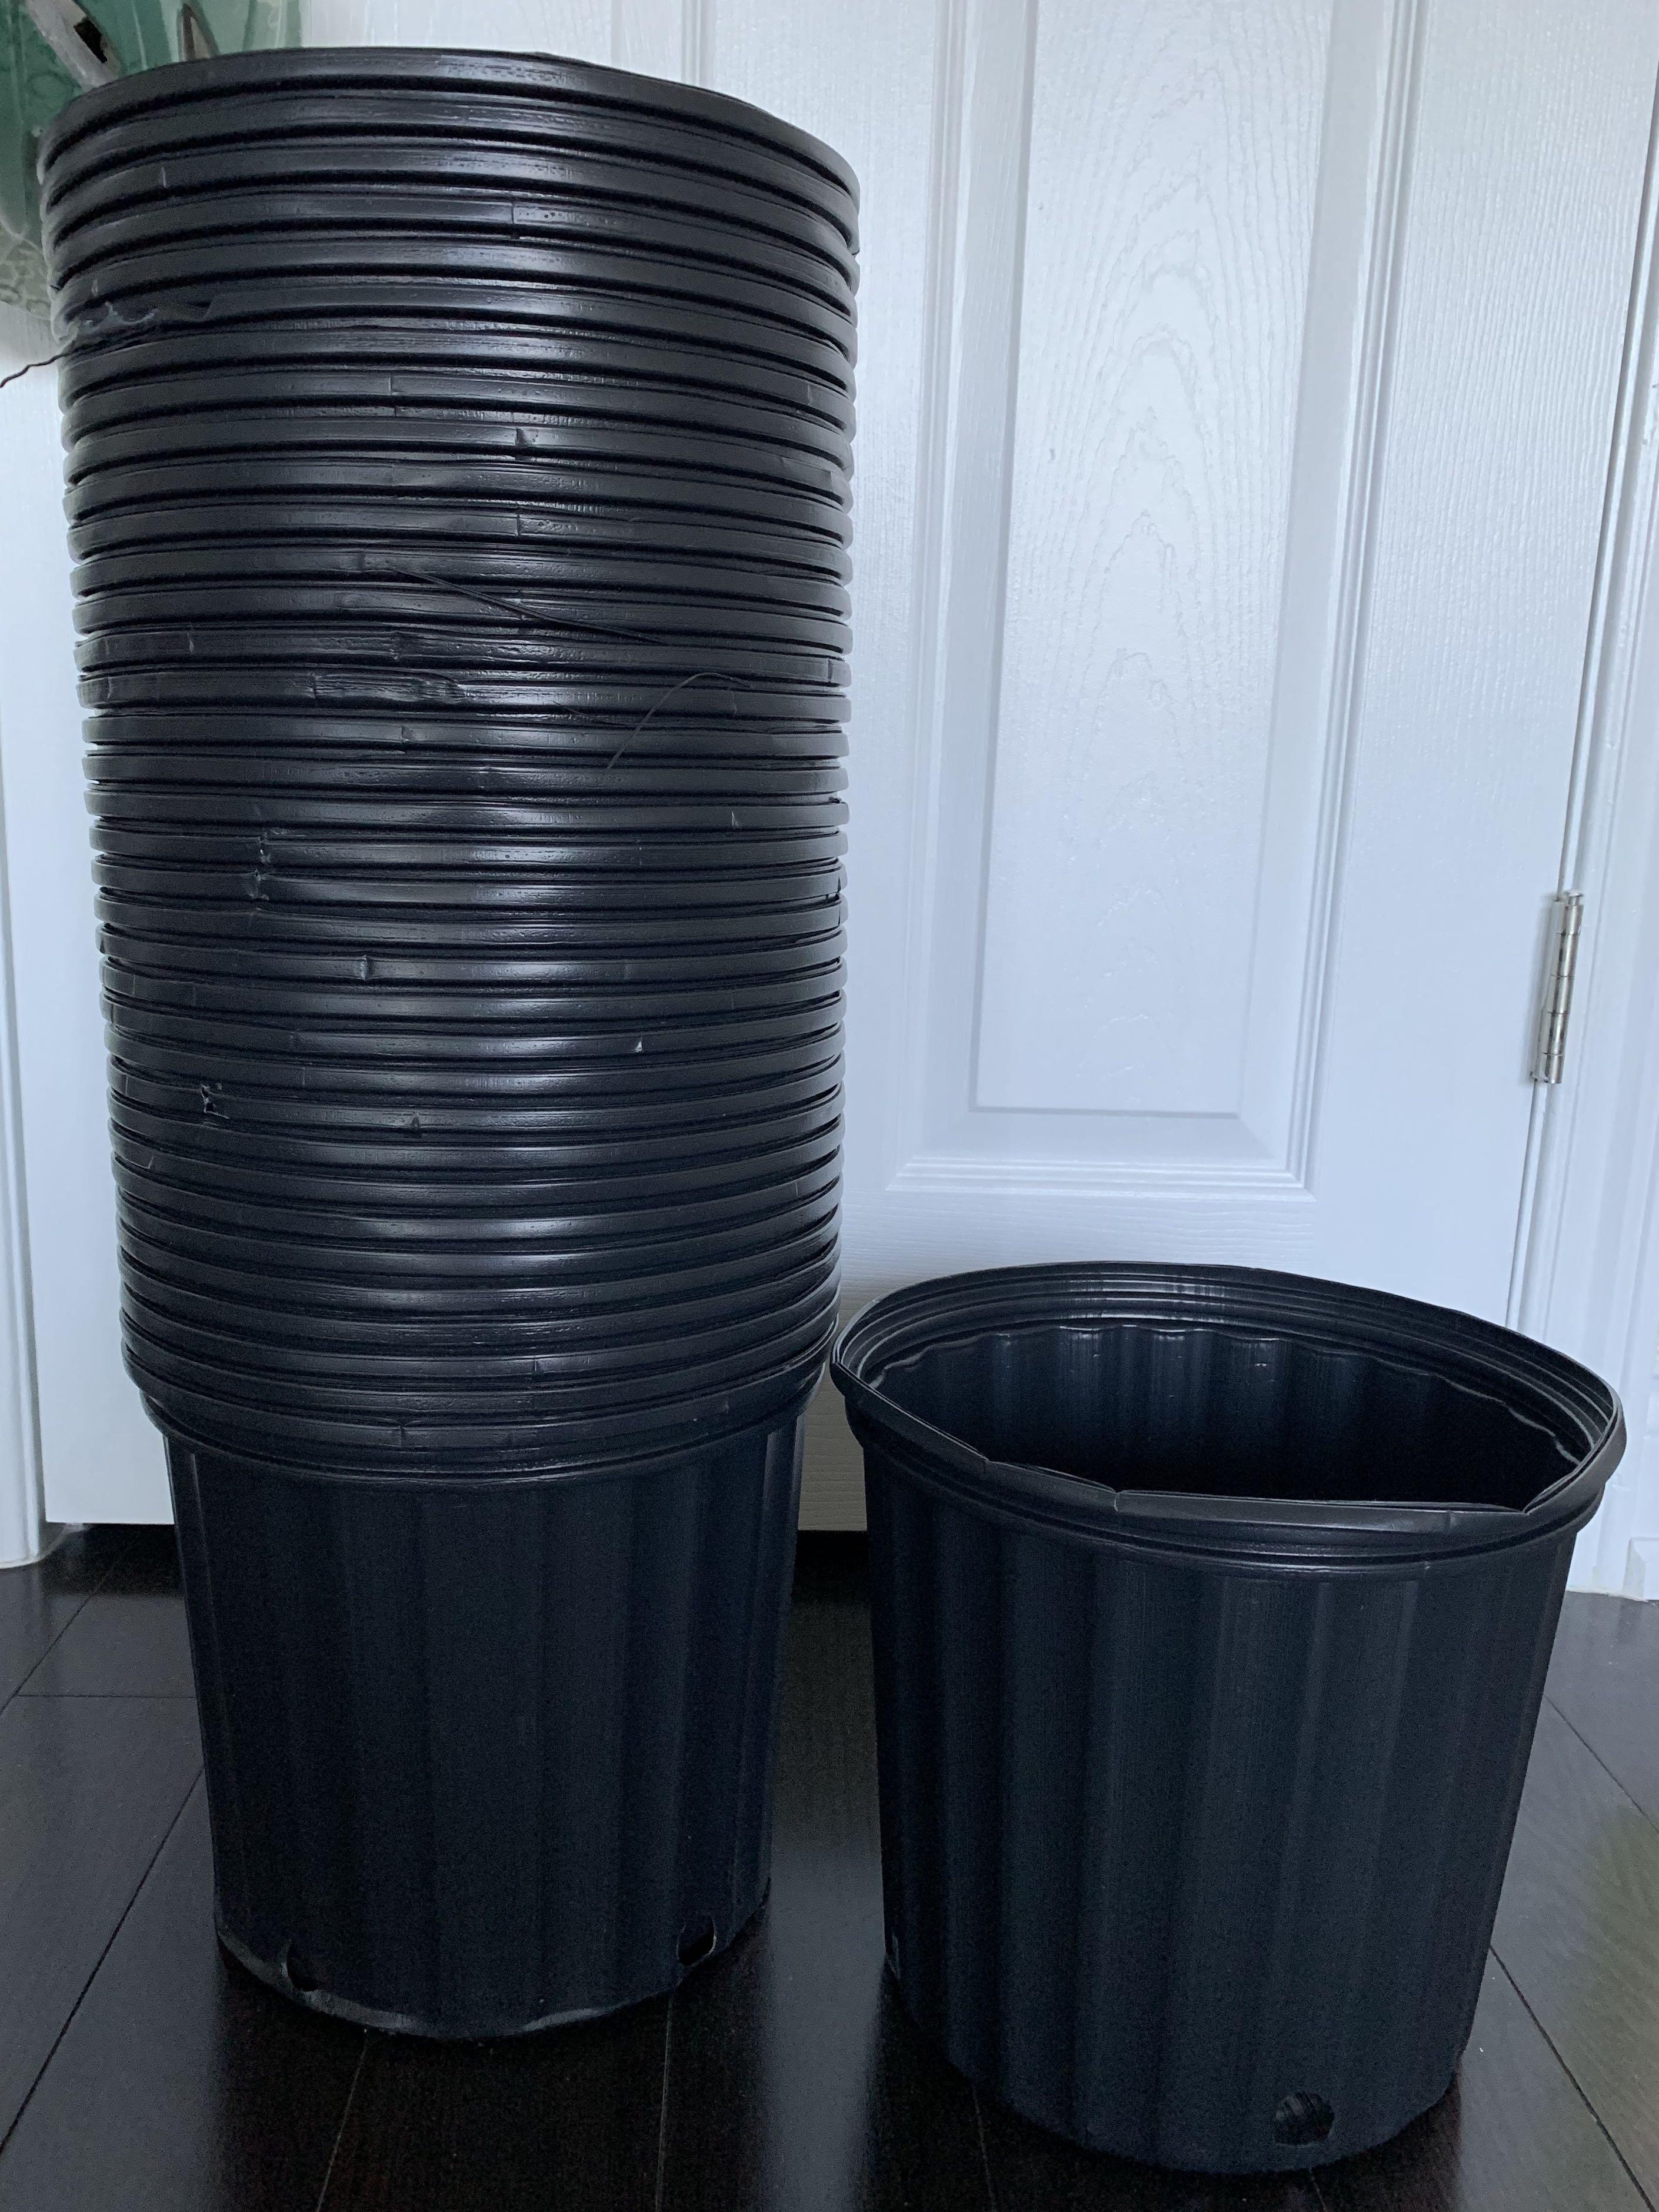 9L Plastic Nursery Plant Pot ($10 for 3 or $4 each) with Drainage holes